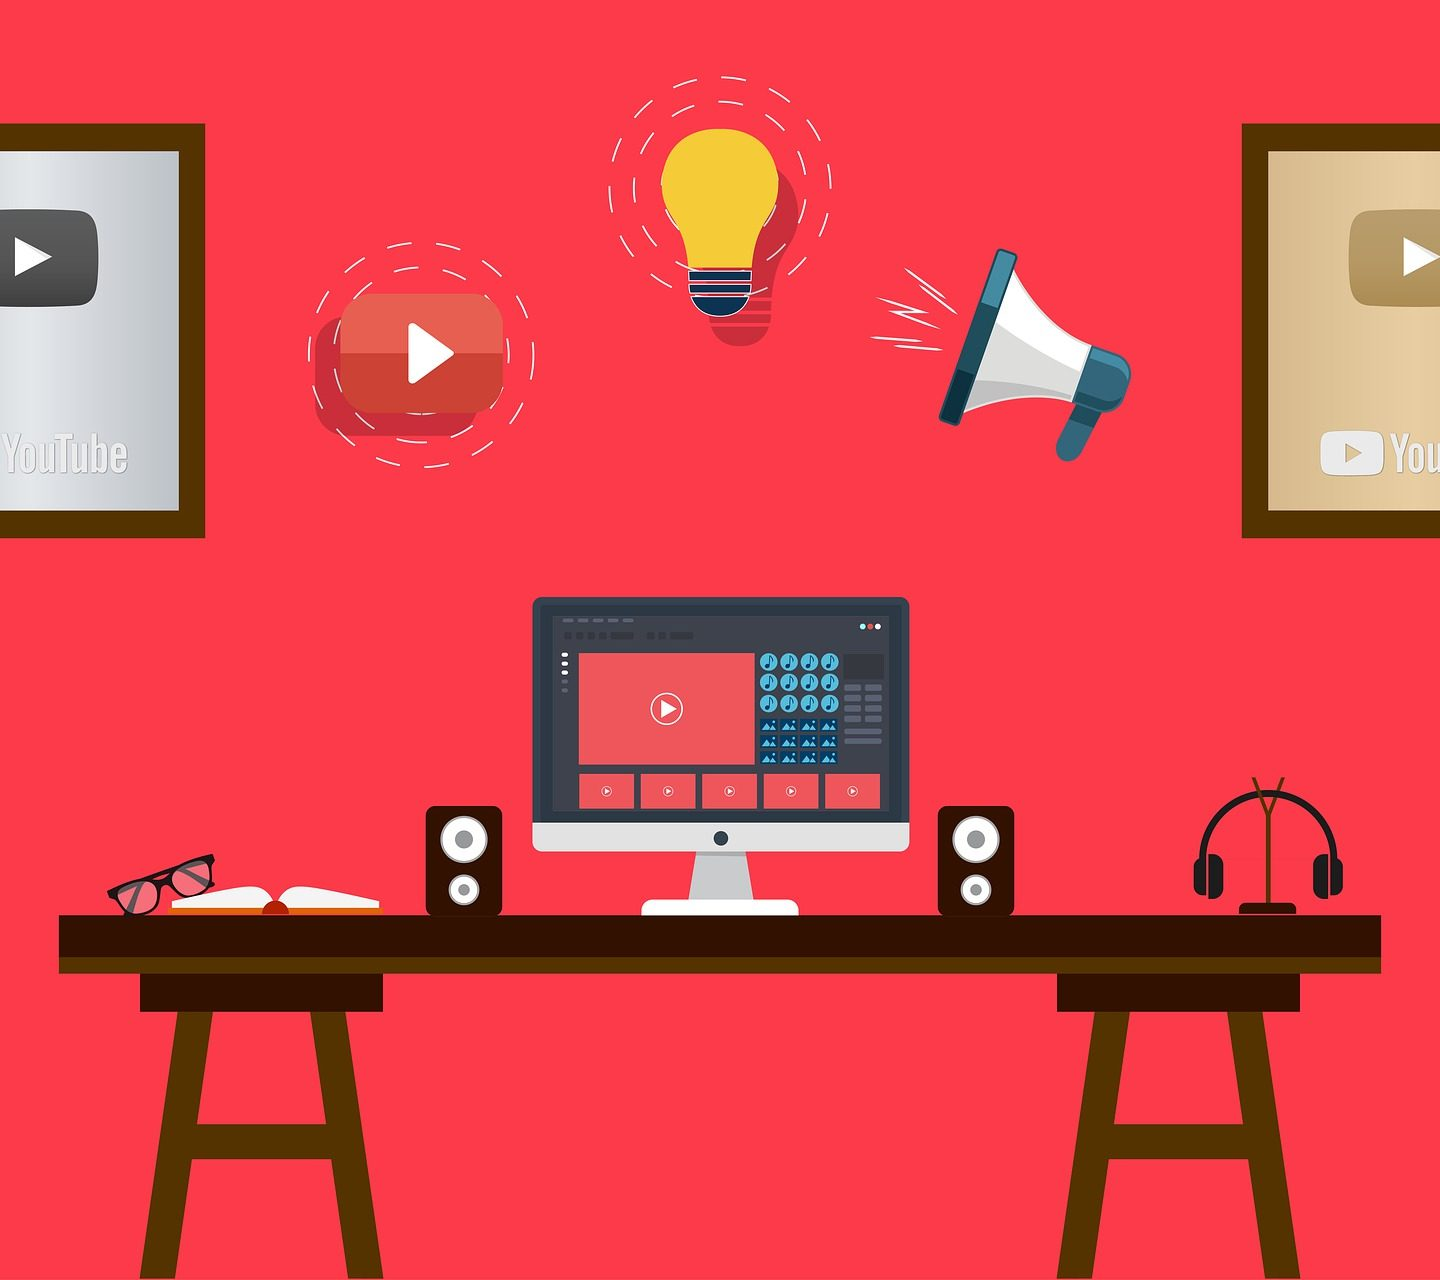 Know This About Video Production To Make It Big On YouTube